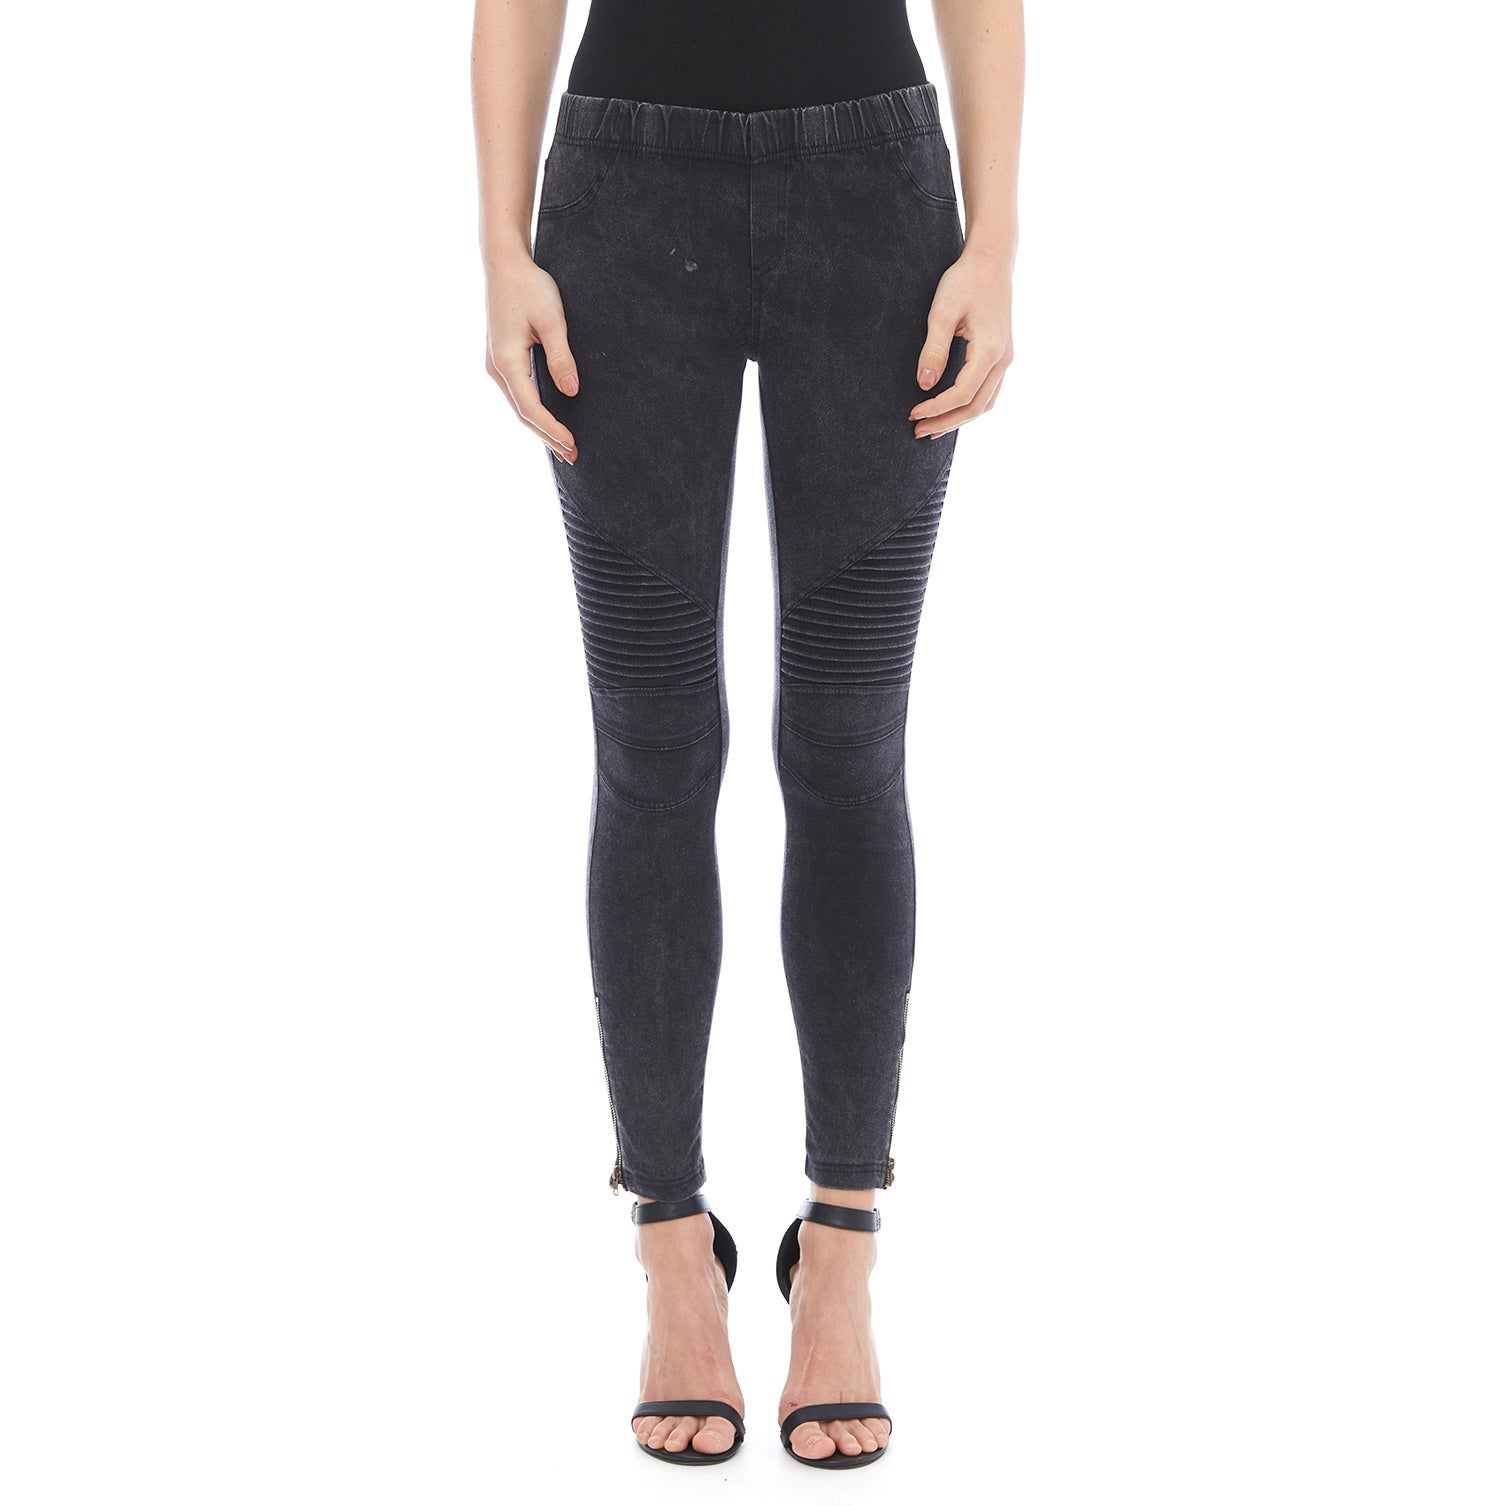 bff135399ae93 Shop Beulah Moto Stretch Legging - Free Shipping Today - Overstock -  13218488